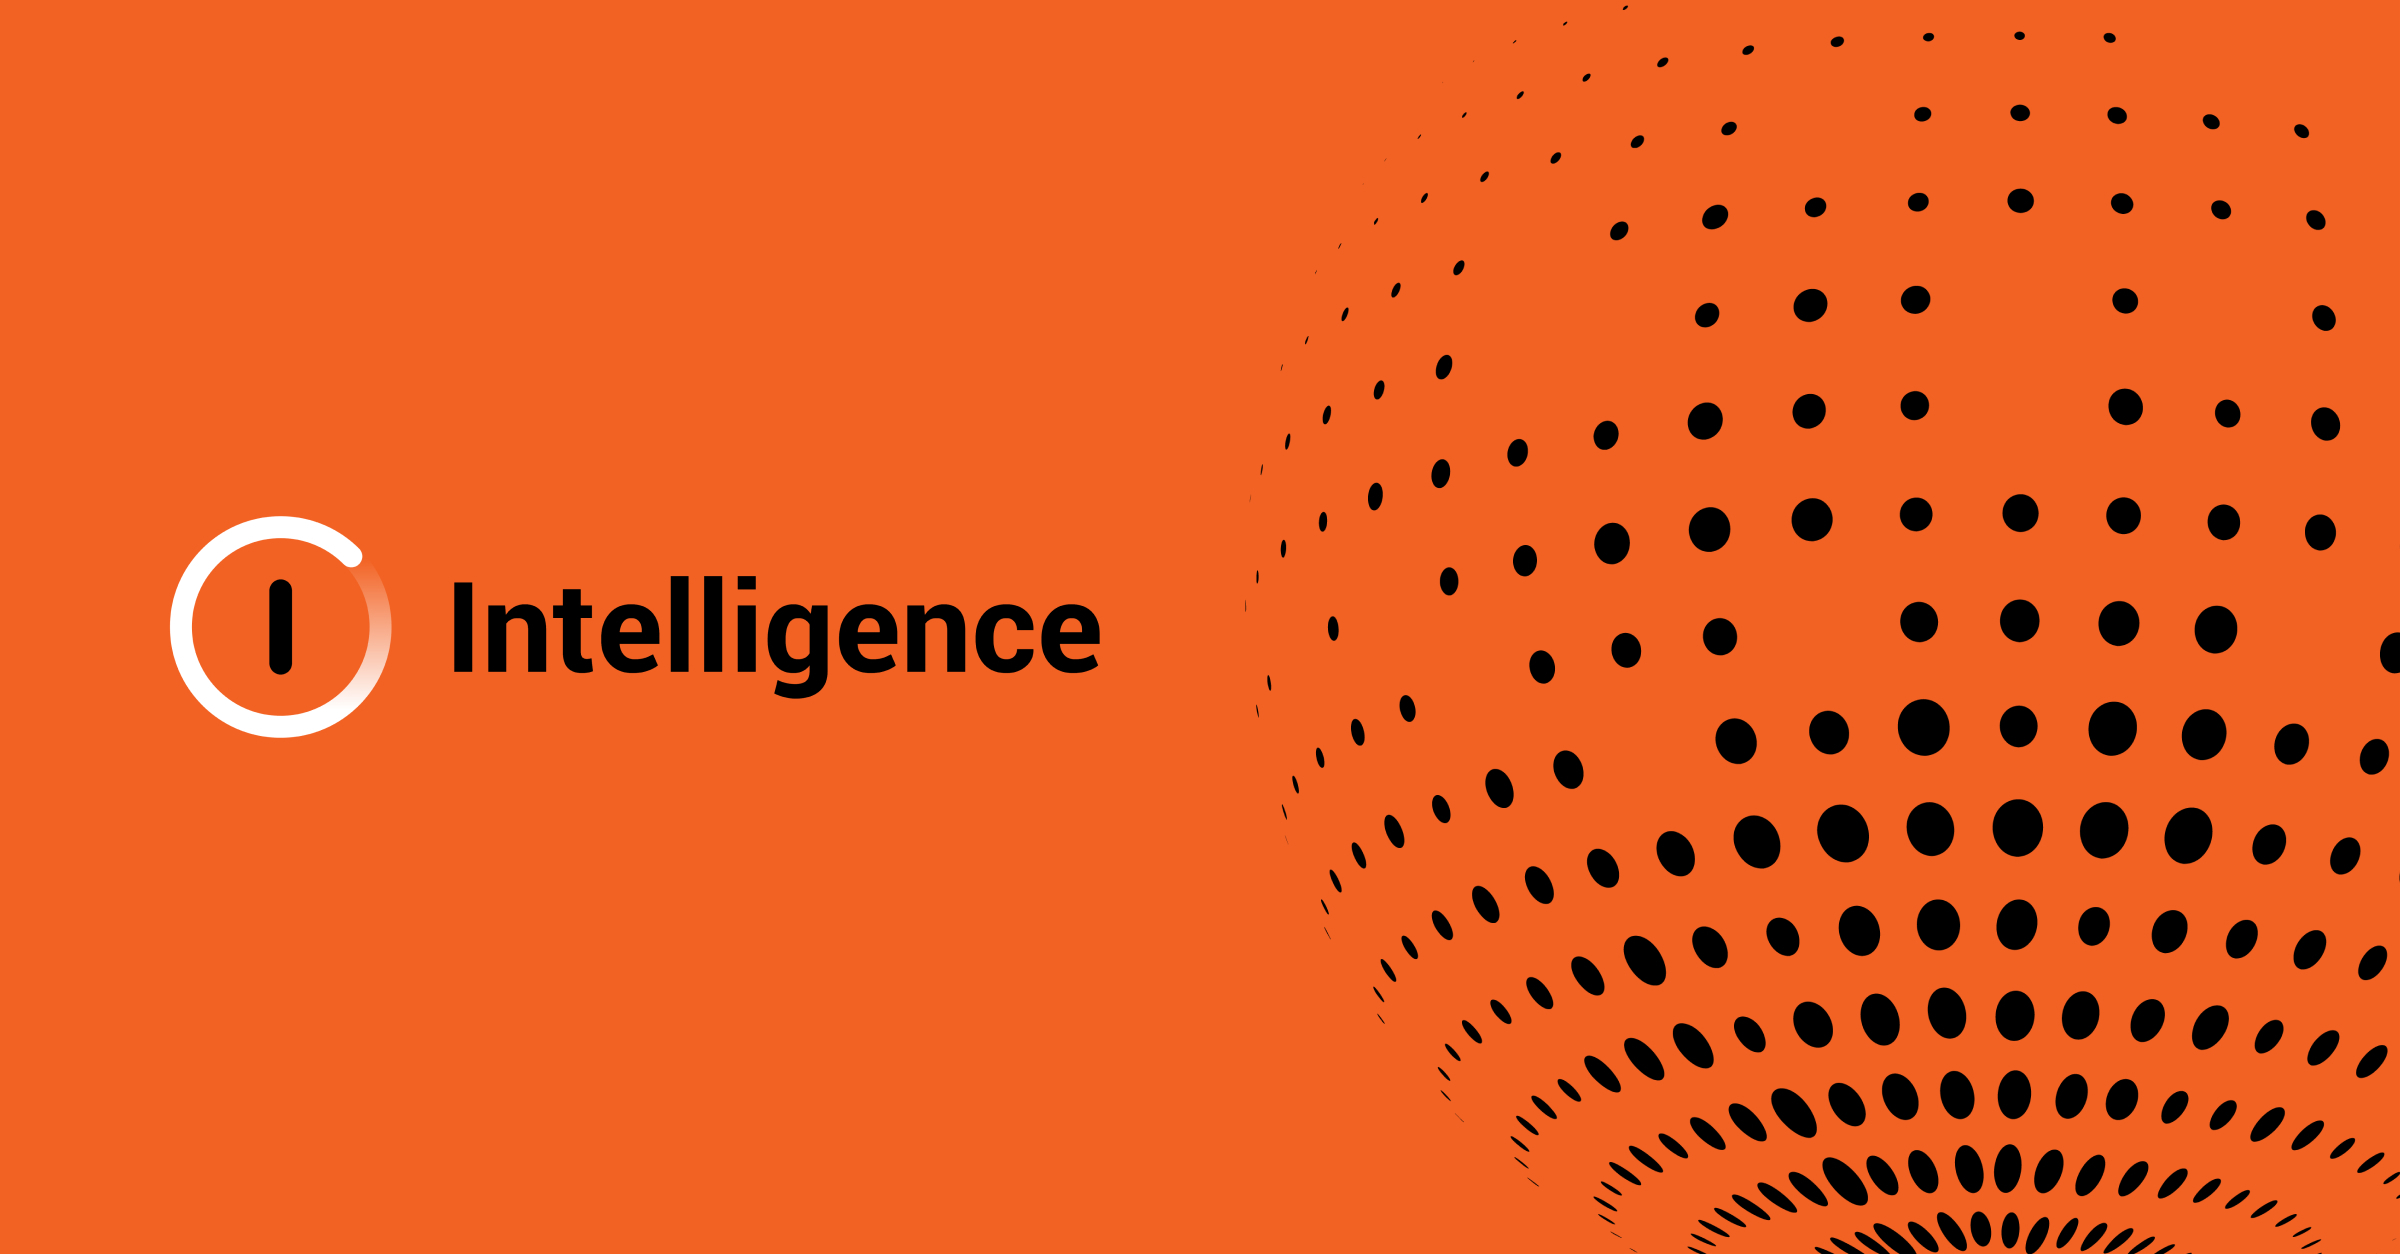 Products_Intelligence_1.01